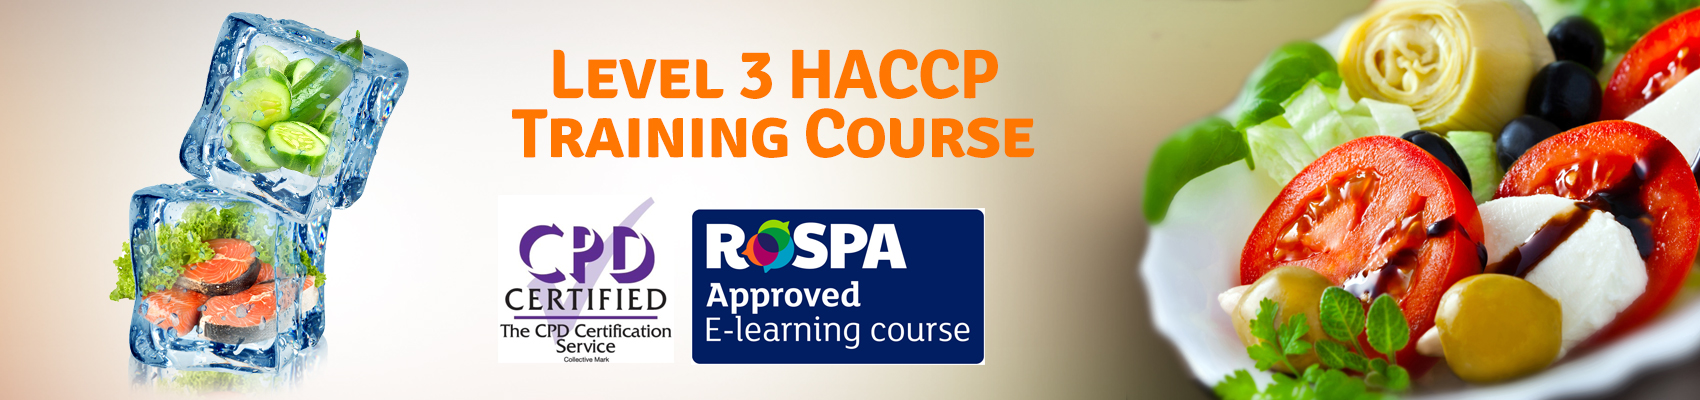 Level 3 Haccp Training Course Green World Group India Nebosh